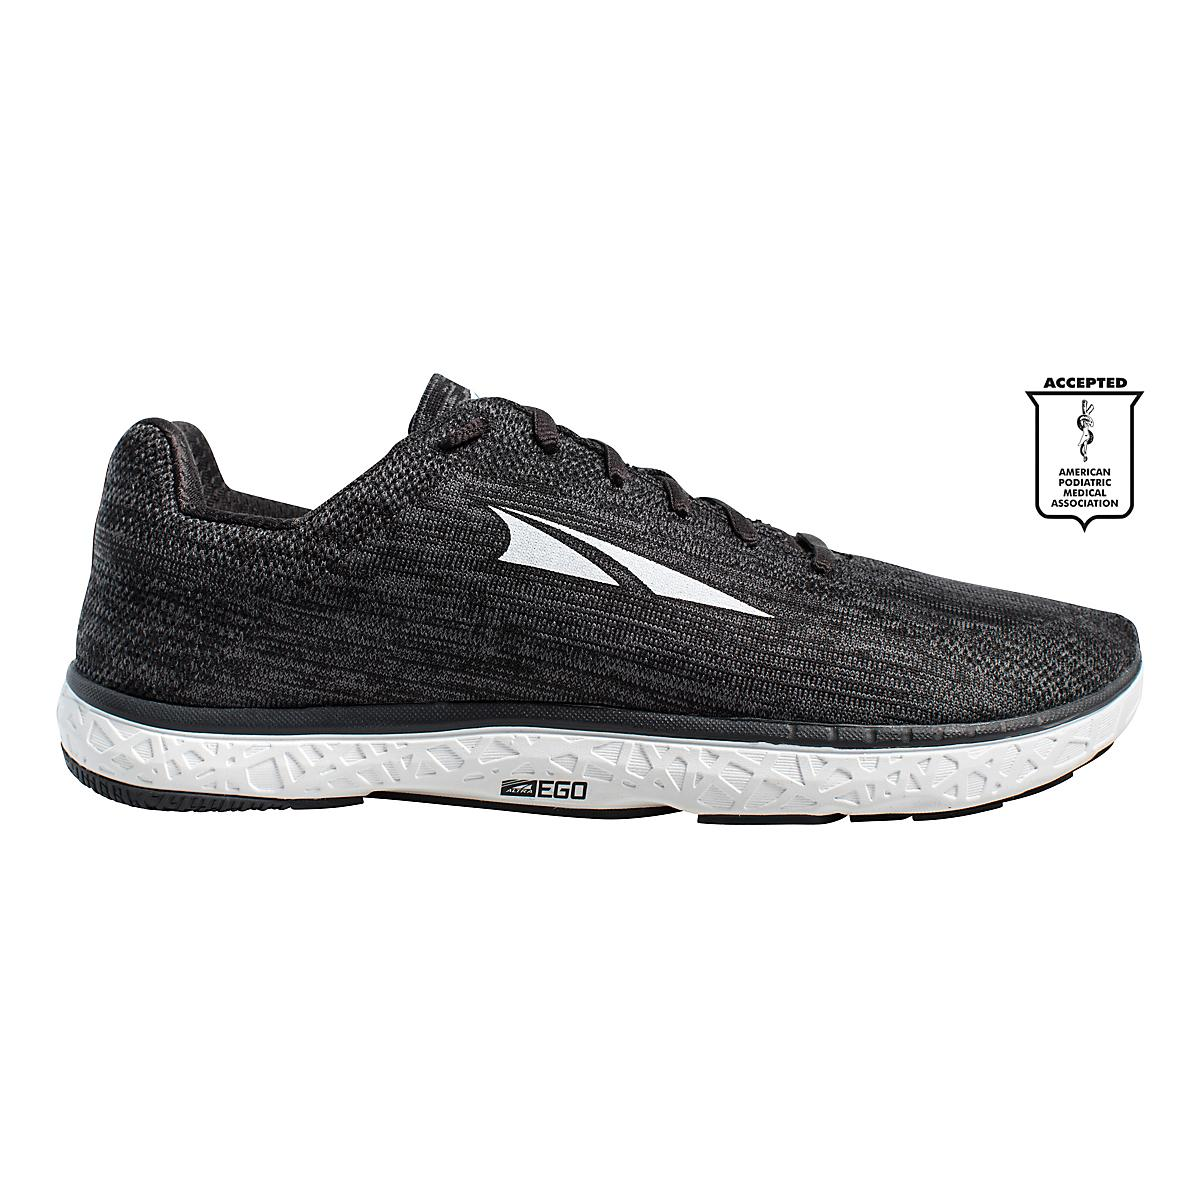 a7ee61db8507b Women s Altra Escalante Running Shoes for Sale